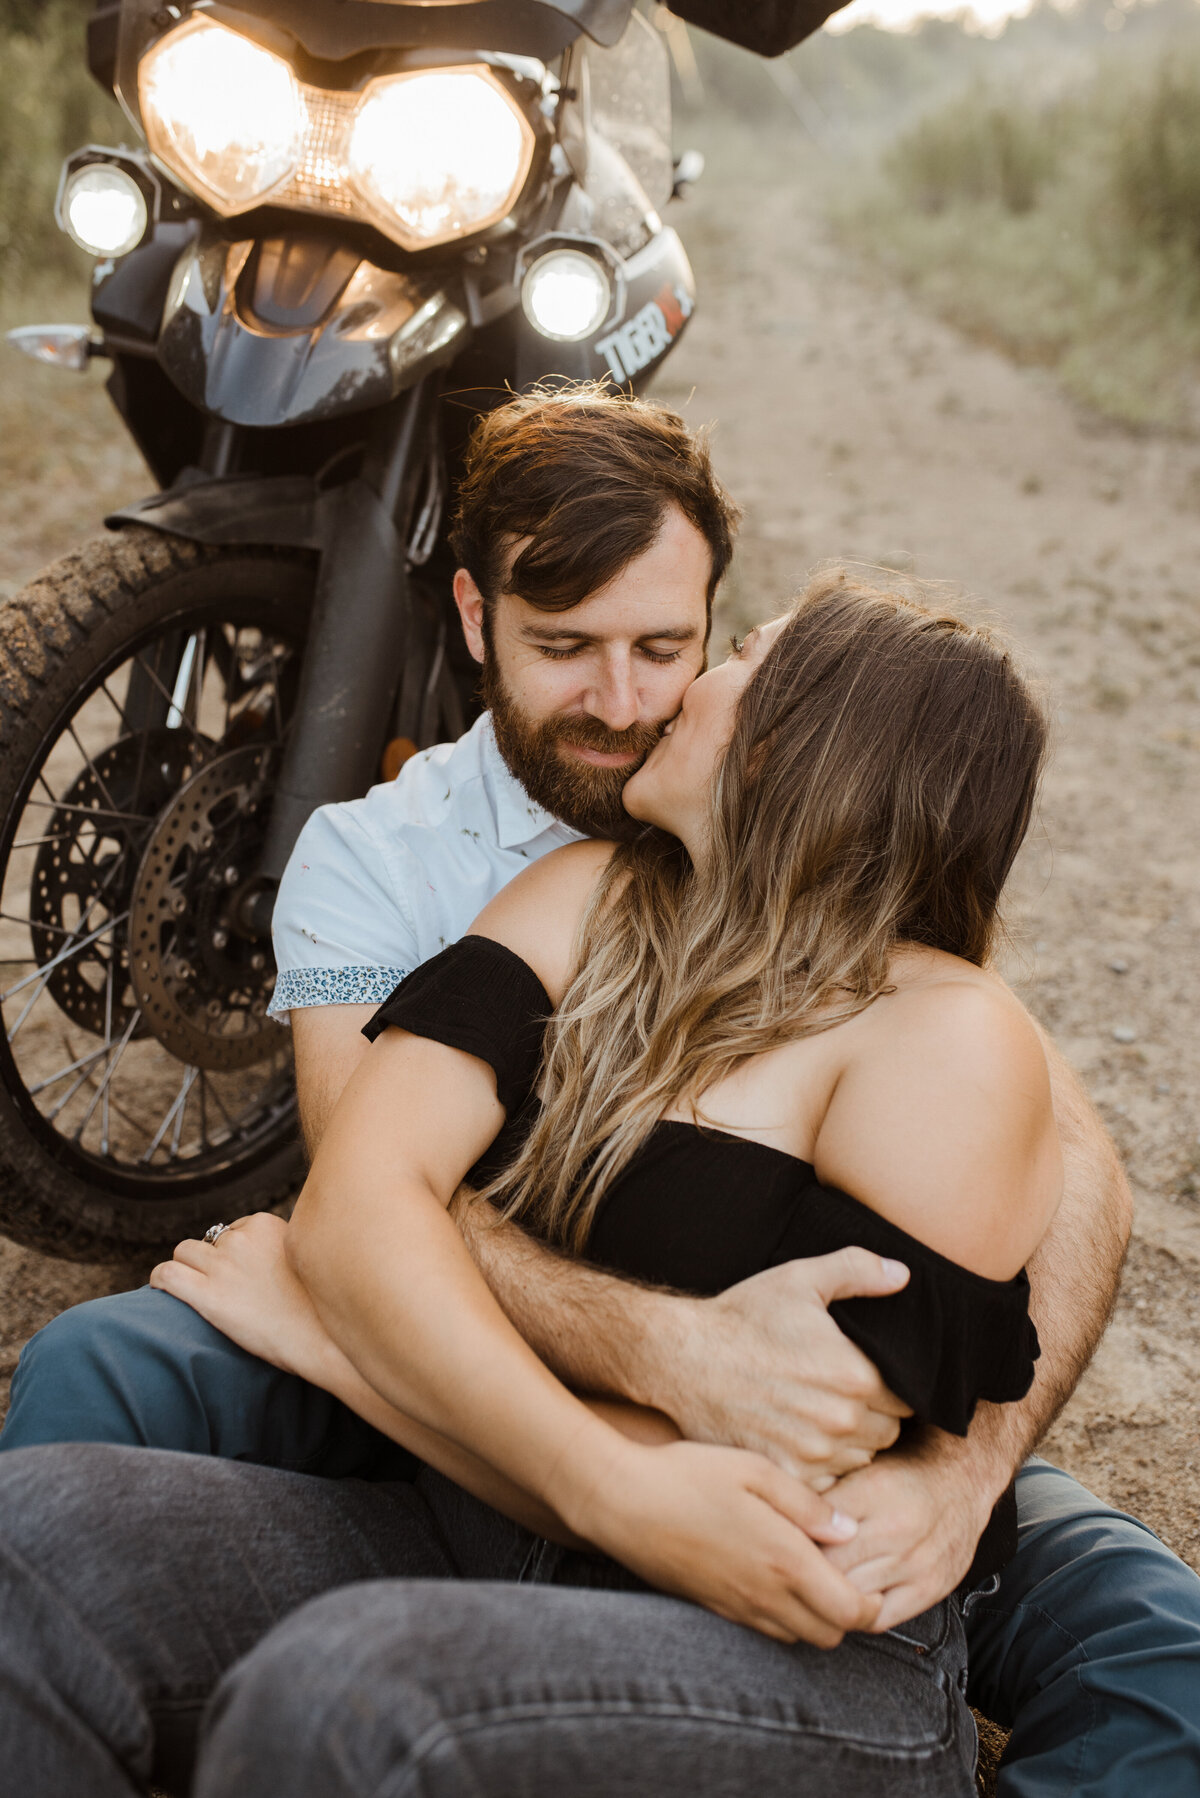 toronto-outdoor-fun-bohemian-motorcycle-engagement-couples-shoot-photography-24